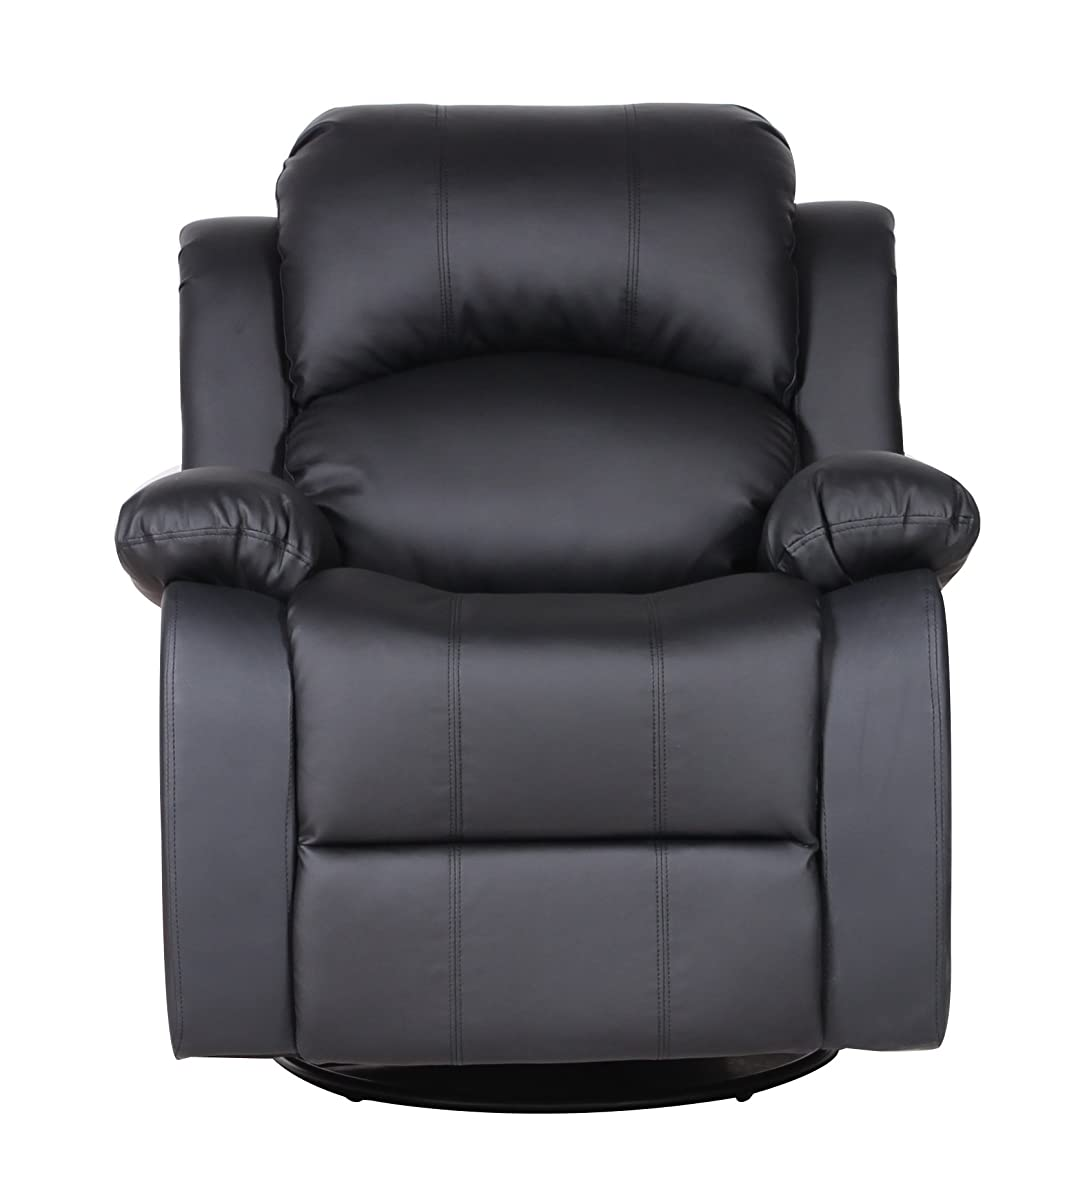 Swivel Rocker Chair For Living Room